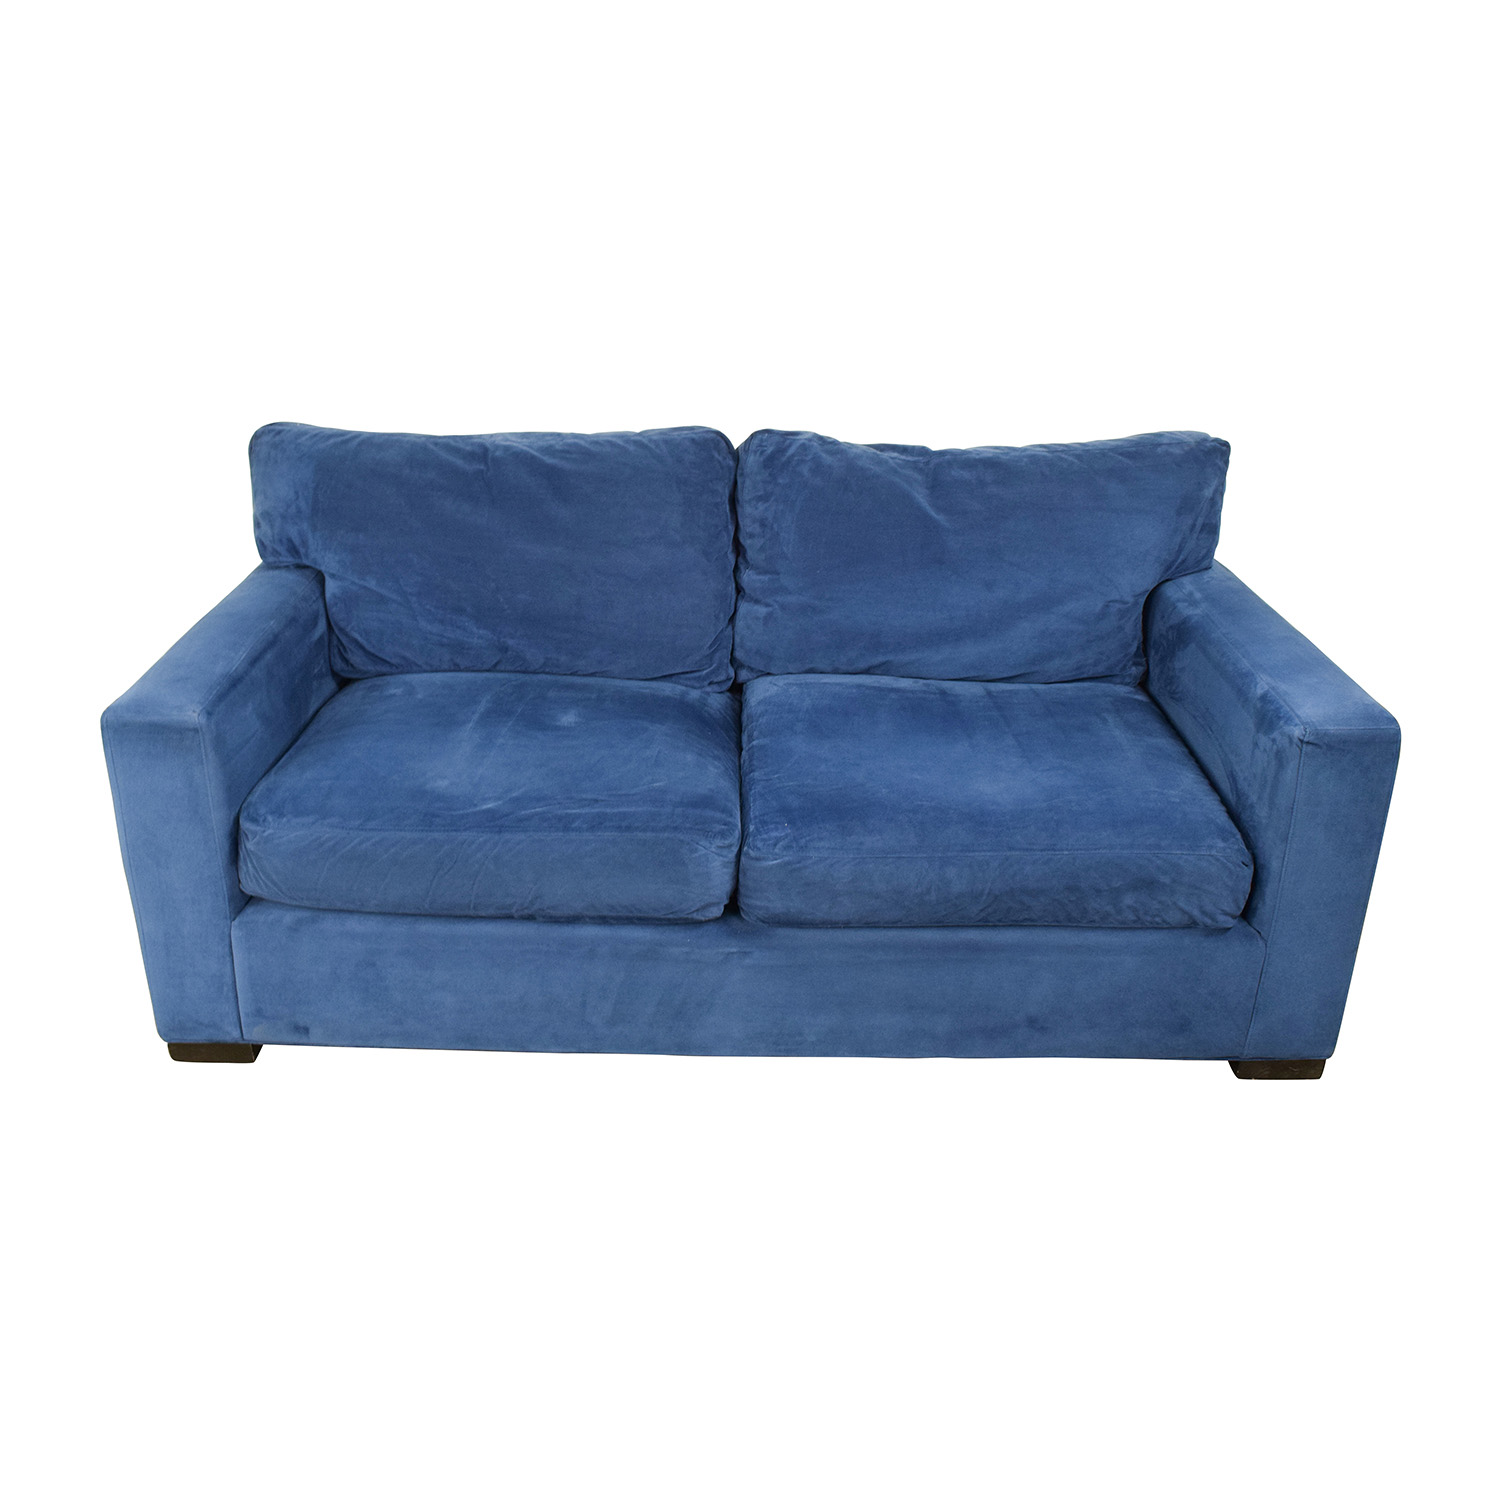 Crate and Barrel Crate & Barrel Axis Two-Seater Sofa